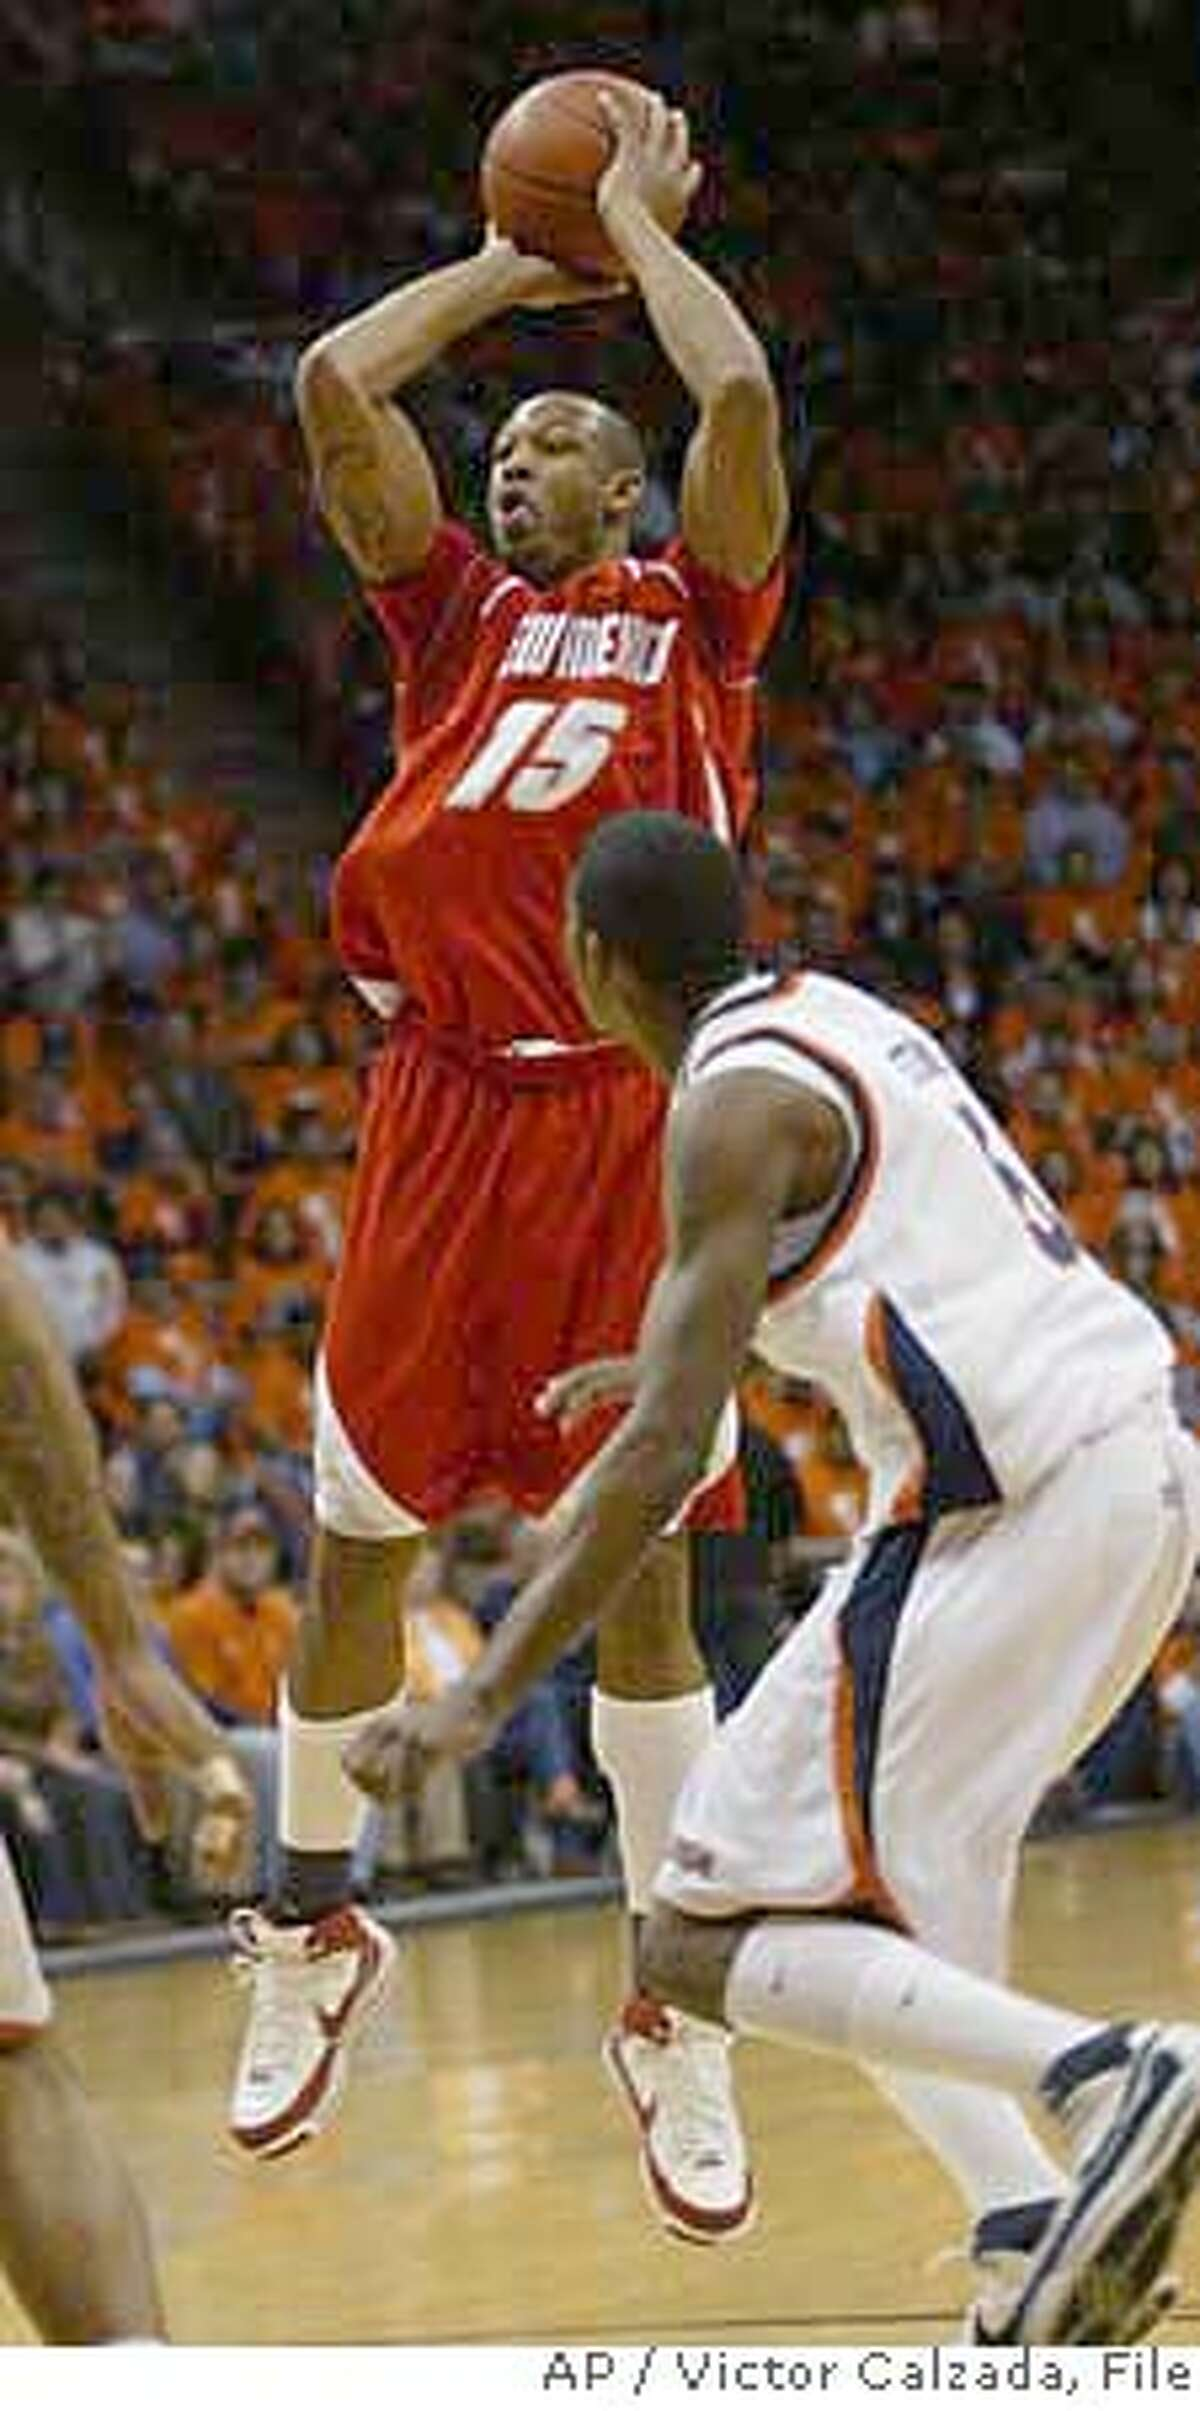 *FILE*New Mexico's J.R. Giddens (15) shoots over UTEP defender Julyan Stone during the first half in this Jan. 2, 2008 file photo, in El Paso, Texas. Giddens is still one of the nation's most capable scoring threats. In many ways, Giddens has been trying to find himself since transferring to New Mexico from Kansas after the 2004-05 season. (AP Photo/El Paso Times, Victor Calzada, File)** EL DIARIO OUT, JUAREZ, MEXICO, OUT ** JAN. 2, 2008 FILE PHOTO EL DIARIO OUT; JUAREZ, MEXICO, OUT; EFE OUT, NO SALES EFE OUT EFE OUT